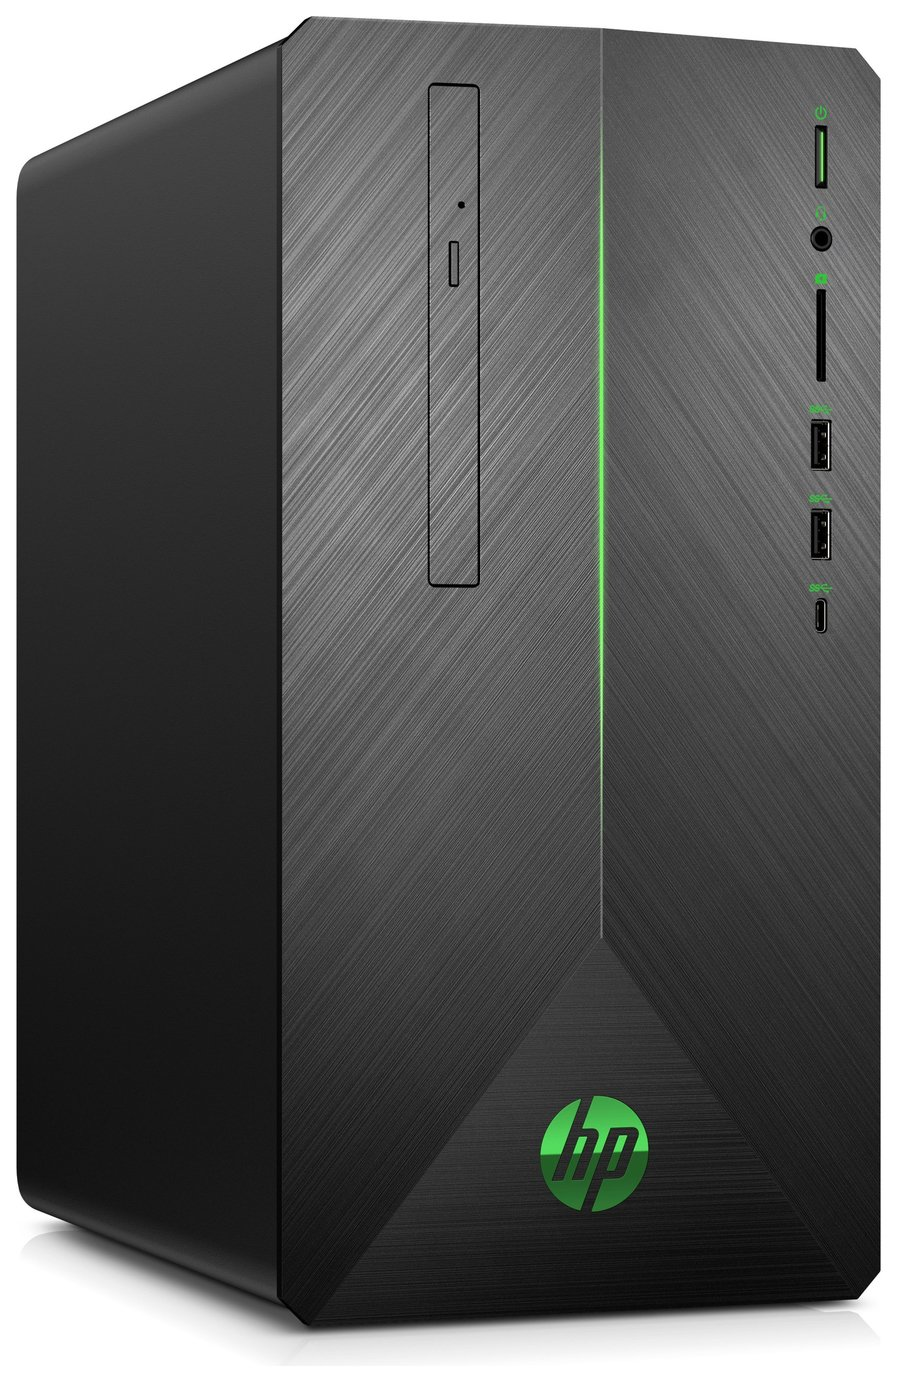 HP Pavilion i5 8GB/16GB Optane 2TB GTX1050Ti Gaming PC